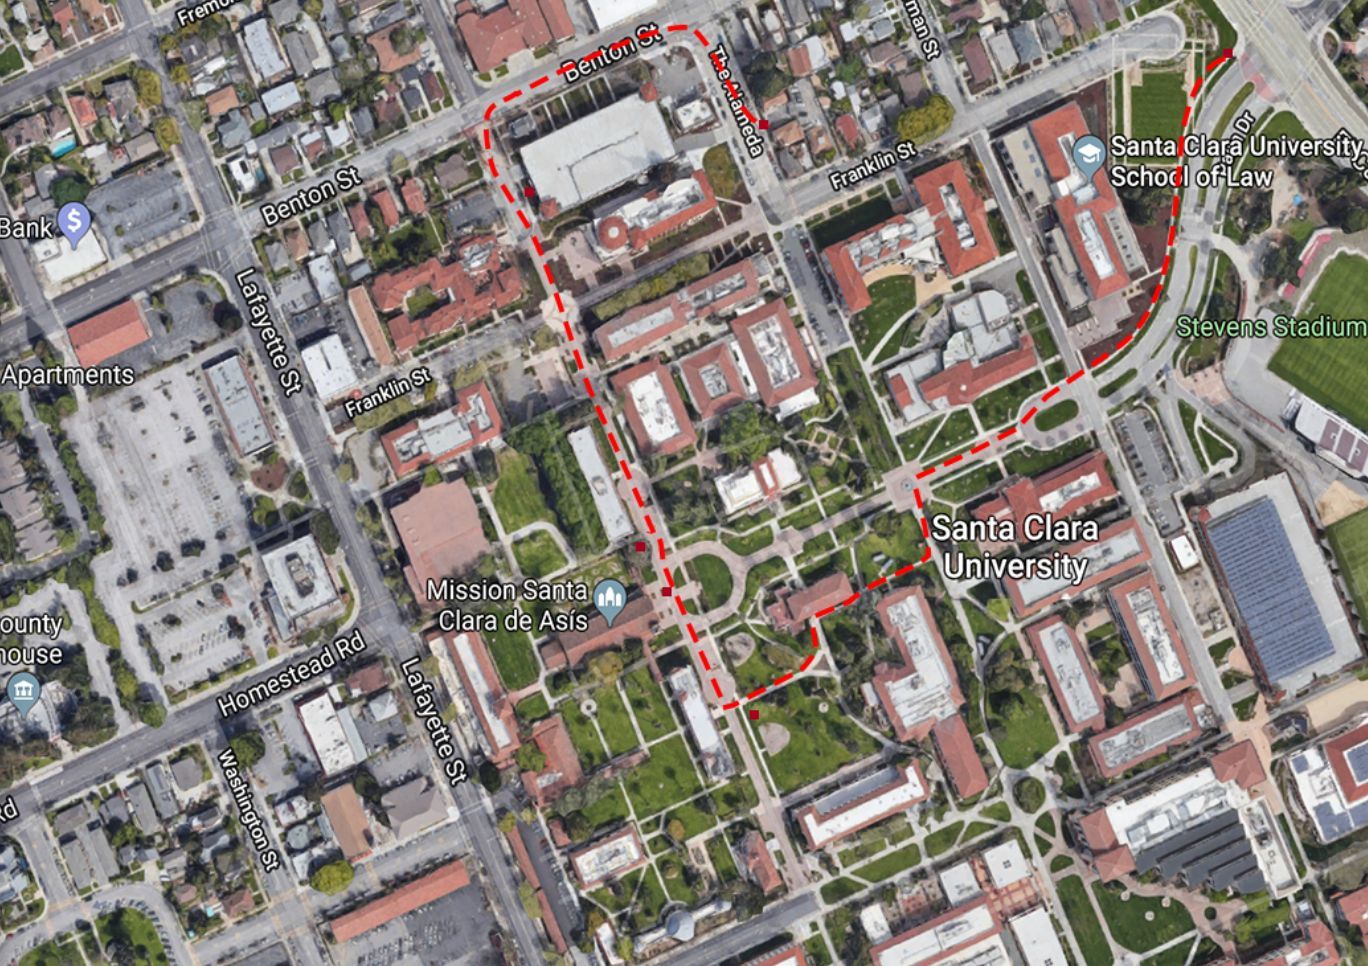 Map of Santa Clara University campus marked with red tour route.